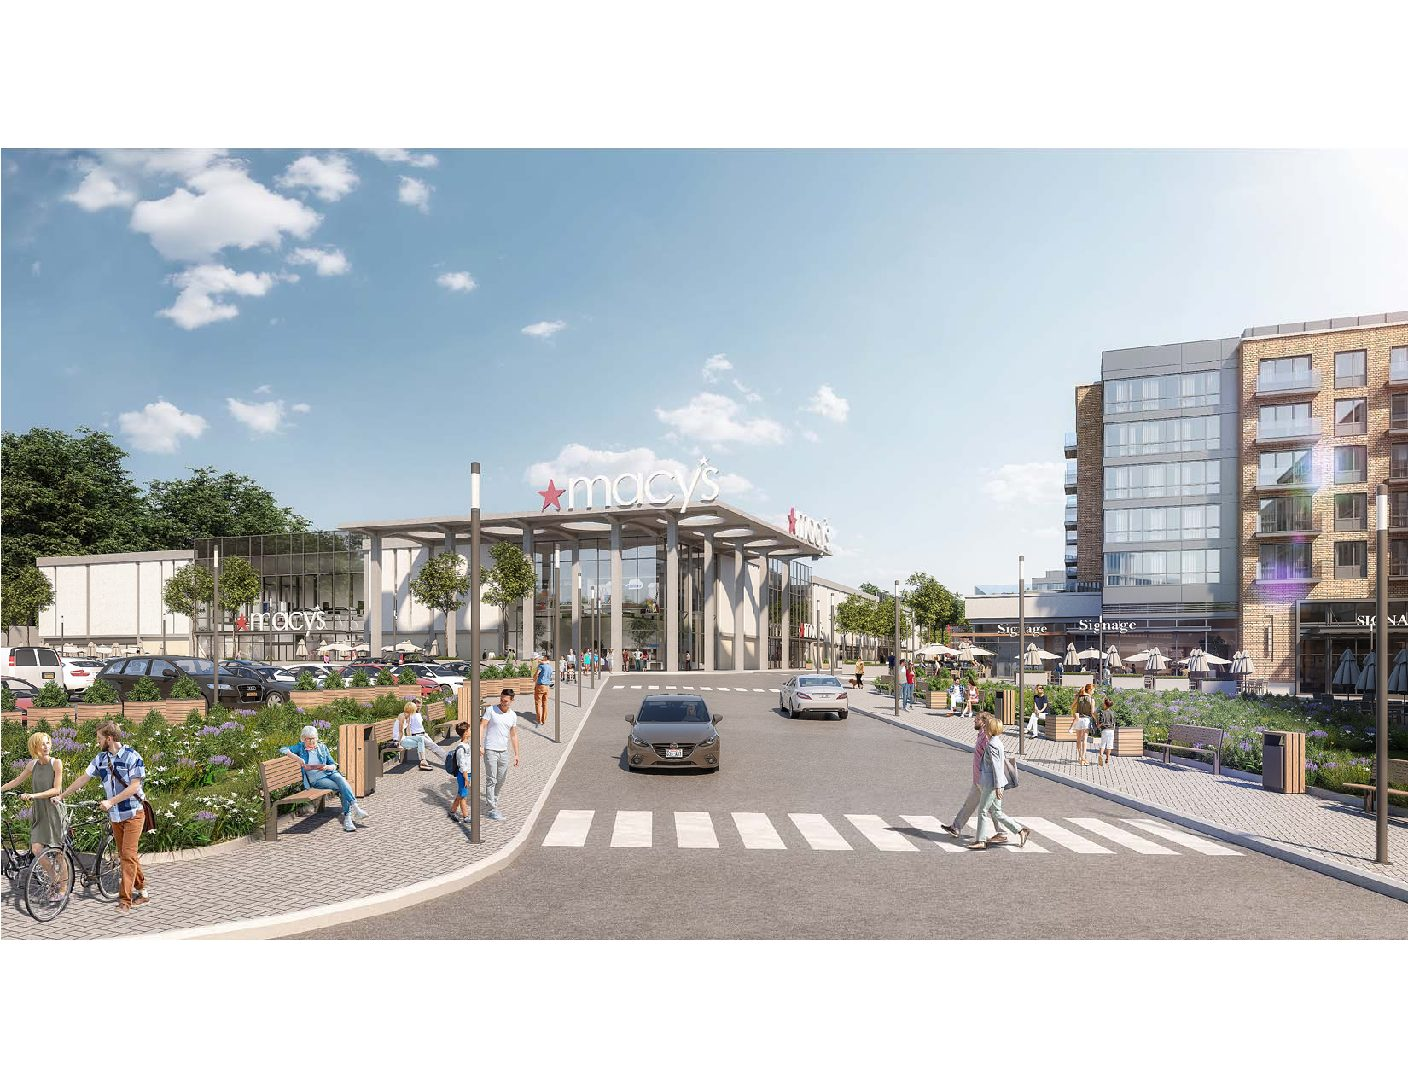 Brookfield, Macy's to submit development plans within 30 days: Brookfield